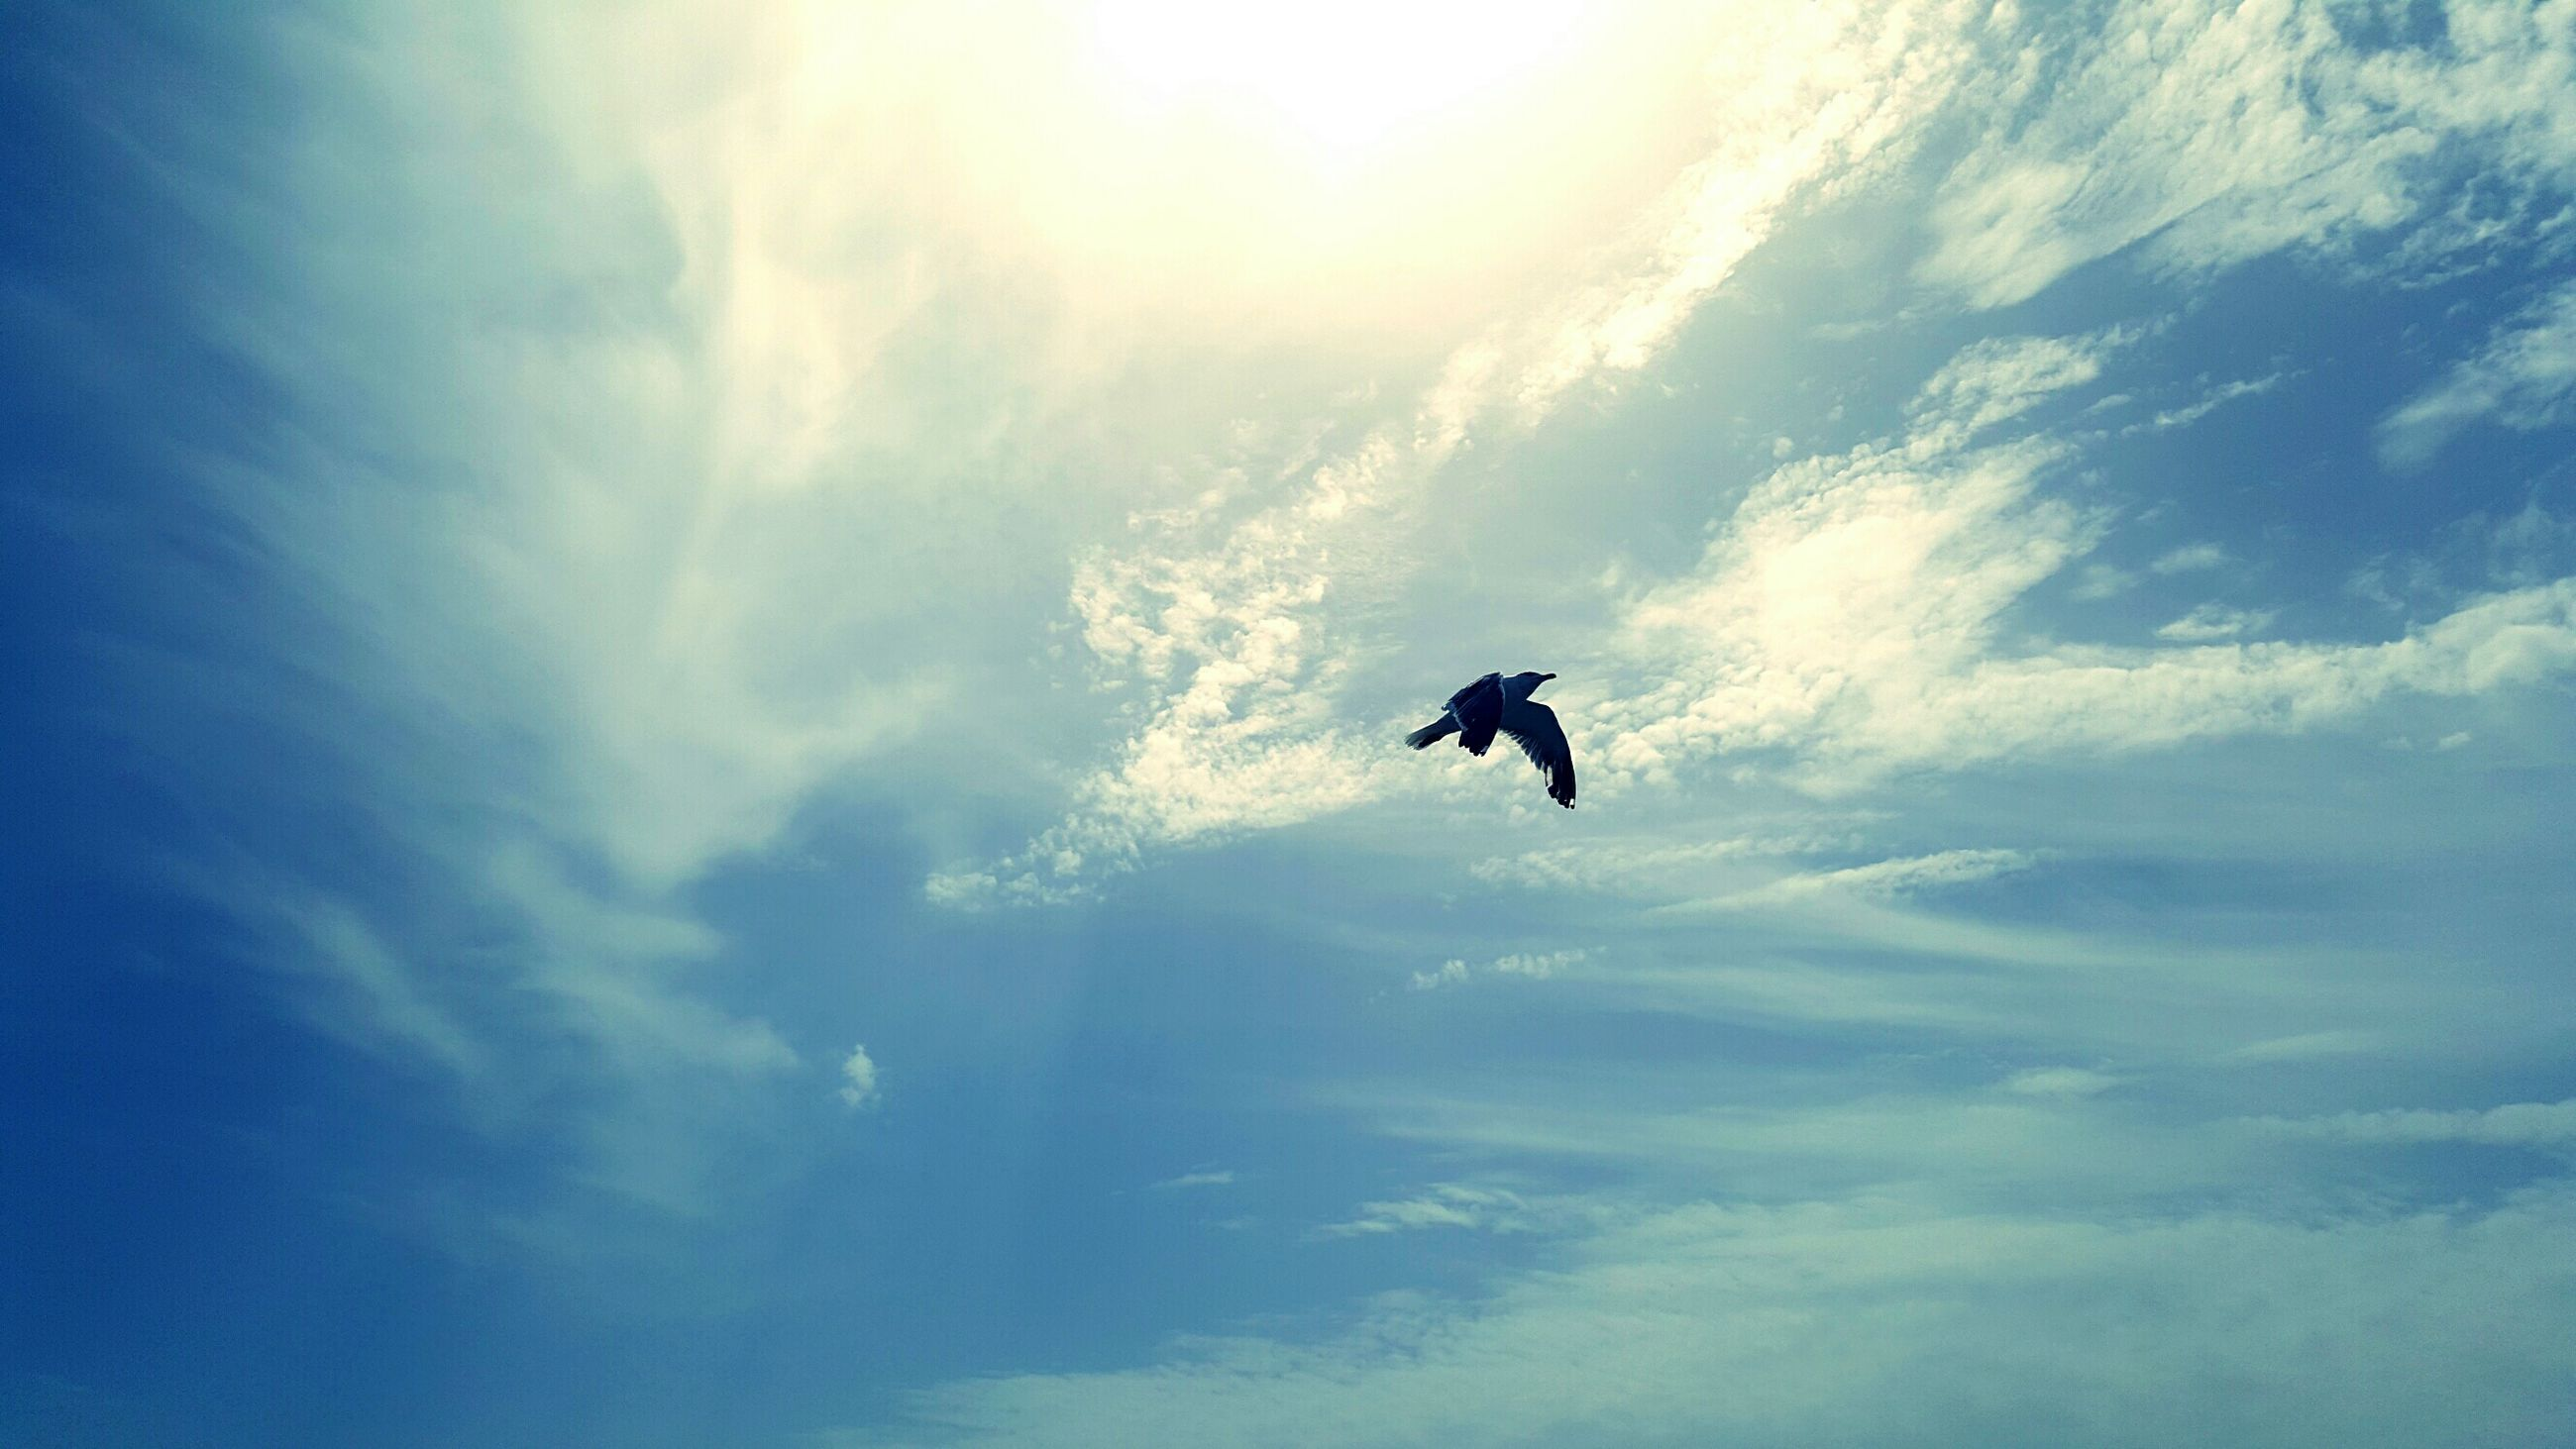 flying, mid-air, low angle view, sky, cloud - sky, nature, cloud, beauty in nature, scenics, tranquility, outdoors, blue, day, tranquil scene, non-urban scene, vacations, carefree, adventure